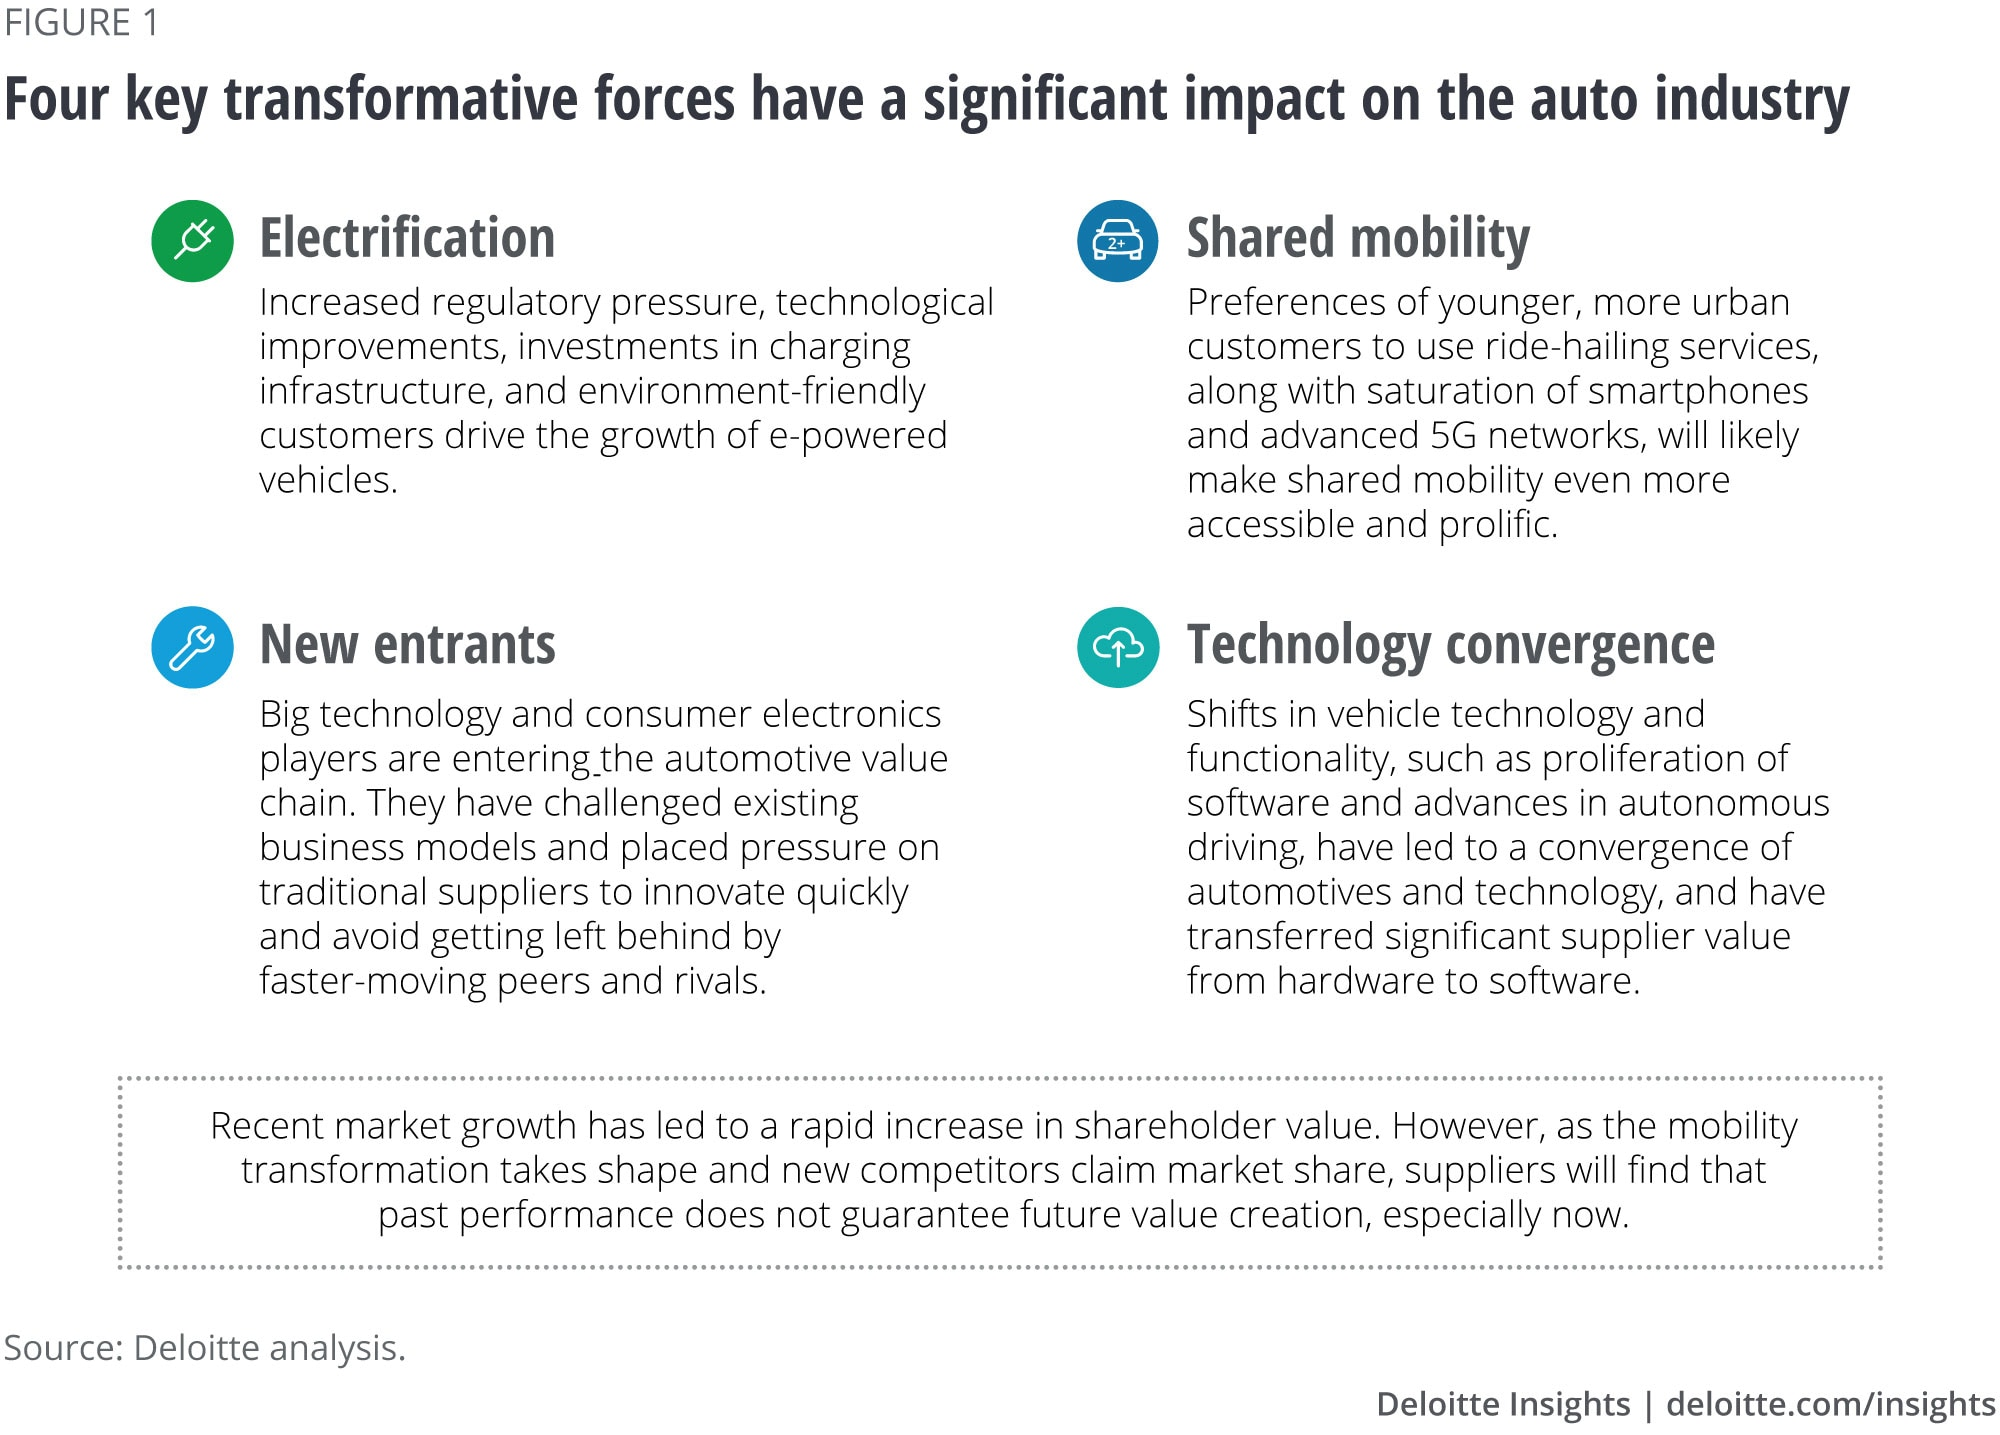 Four key transformative forces have a significant impact on the auto industry